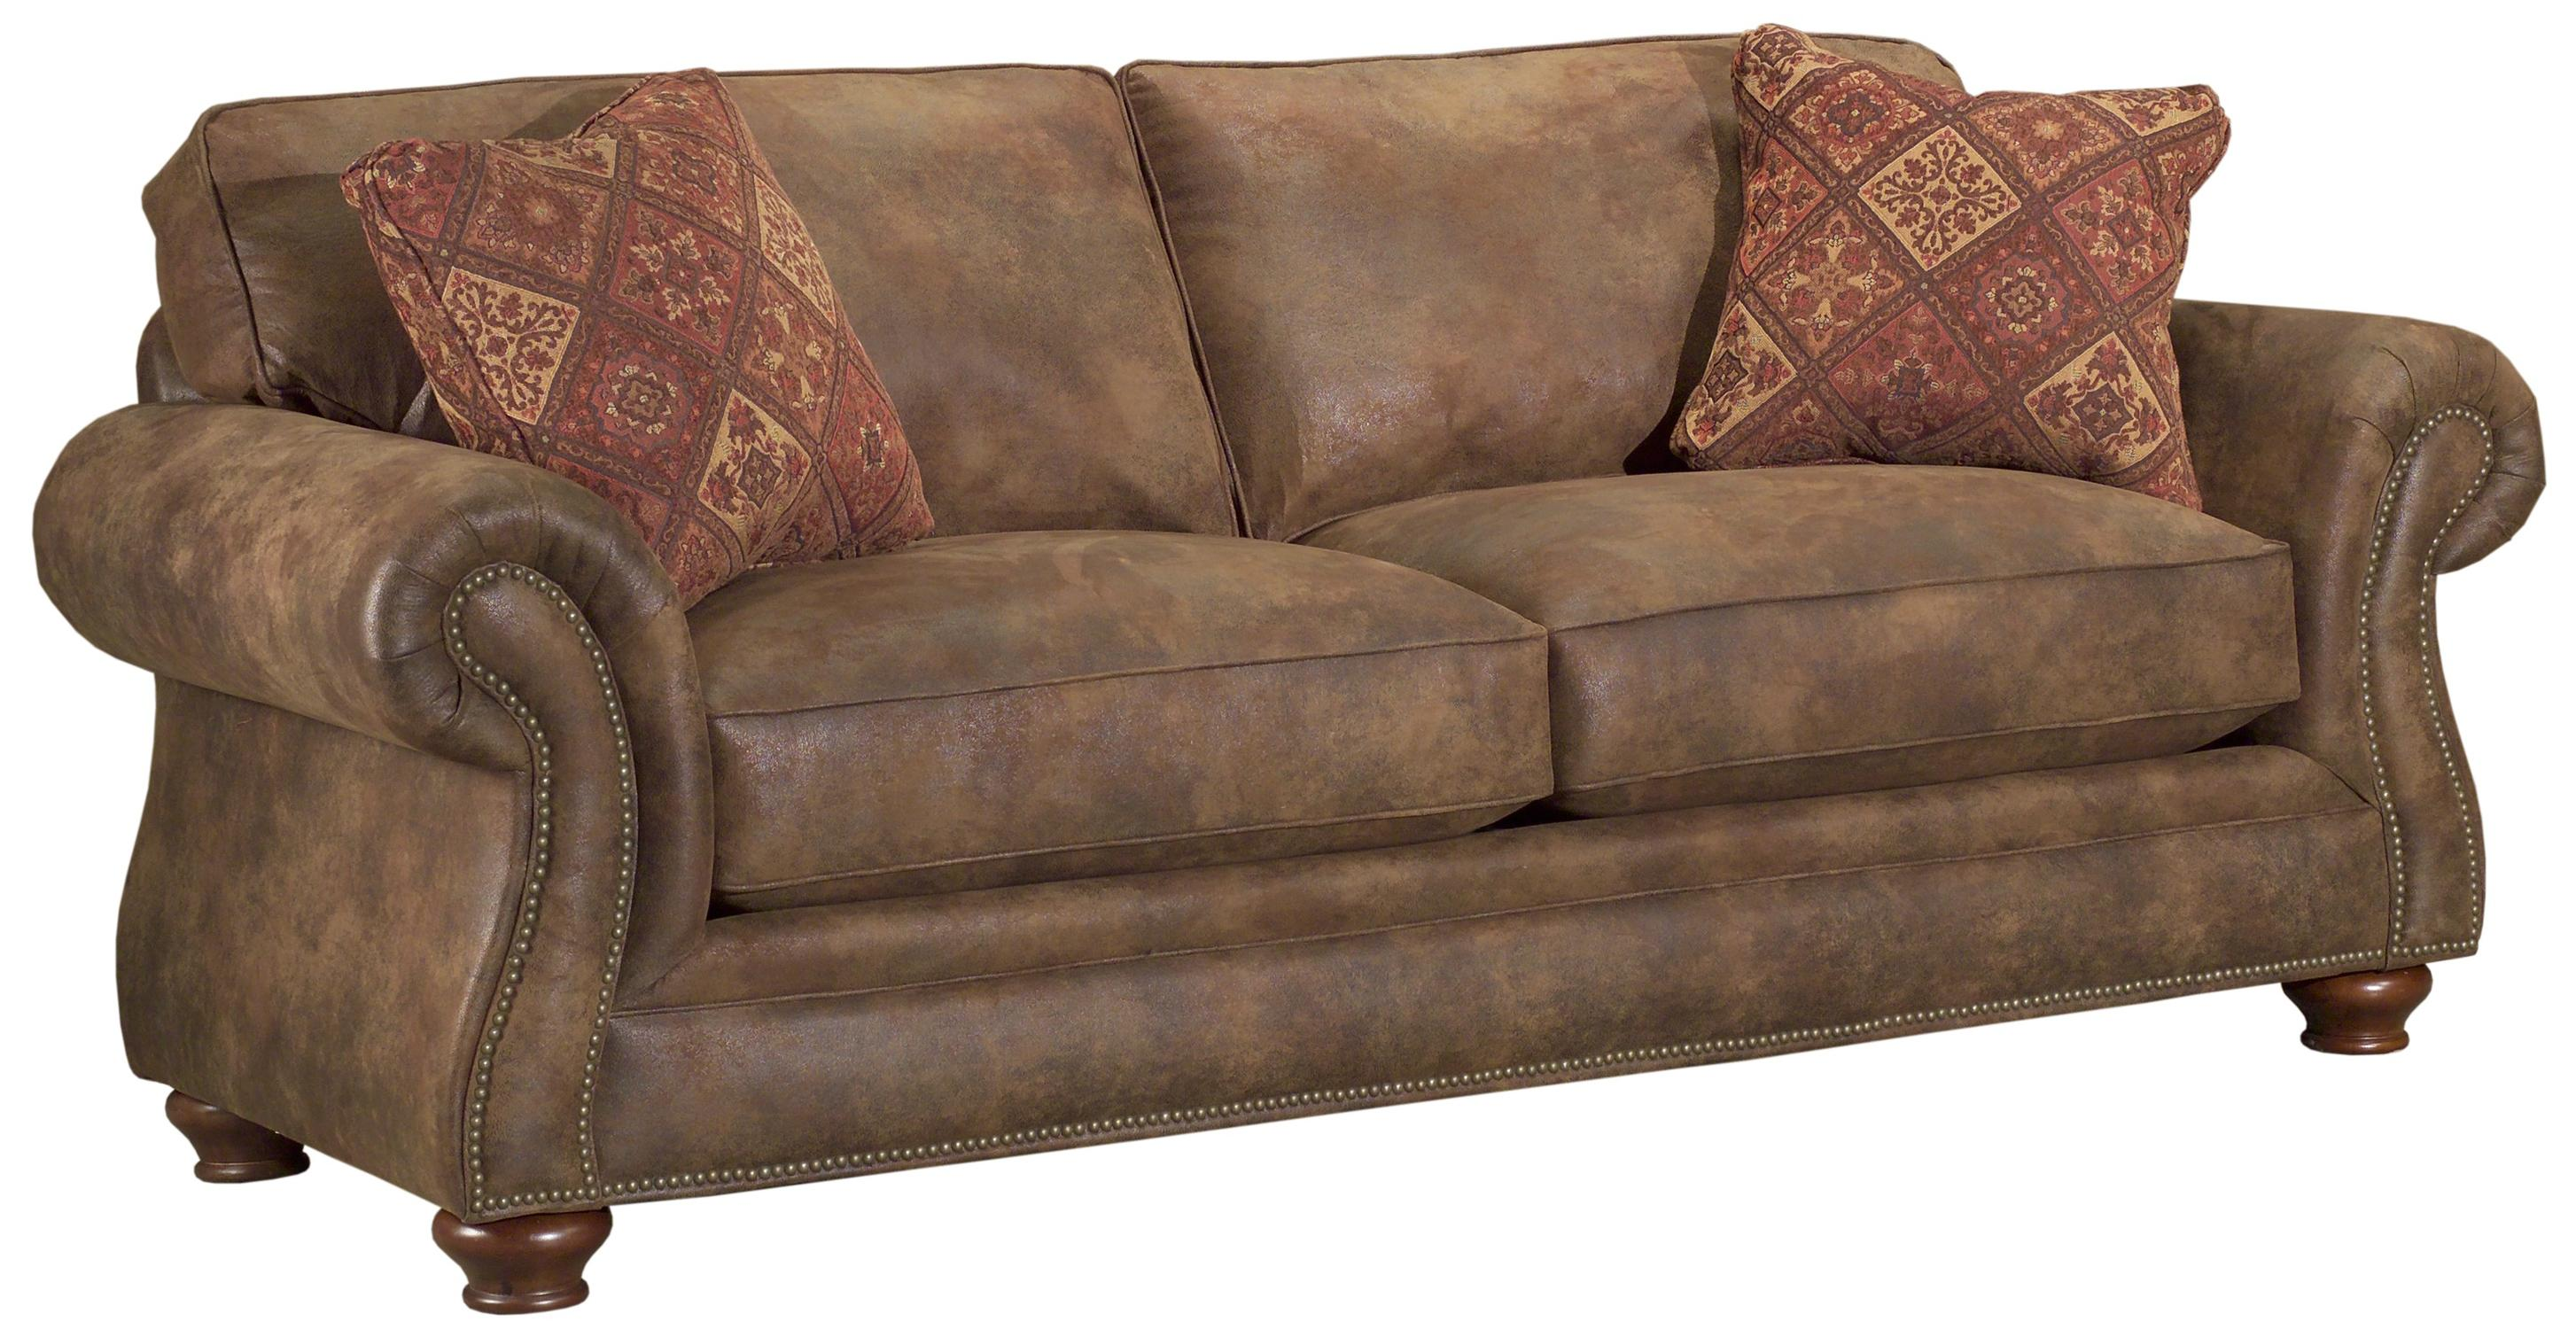 Broyhill Express Laramie Quick Ship Traditional Sofa With Nailhead Trim Colder S Furniture And